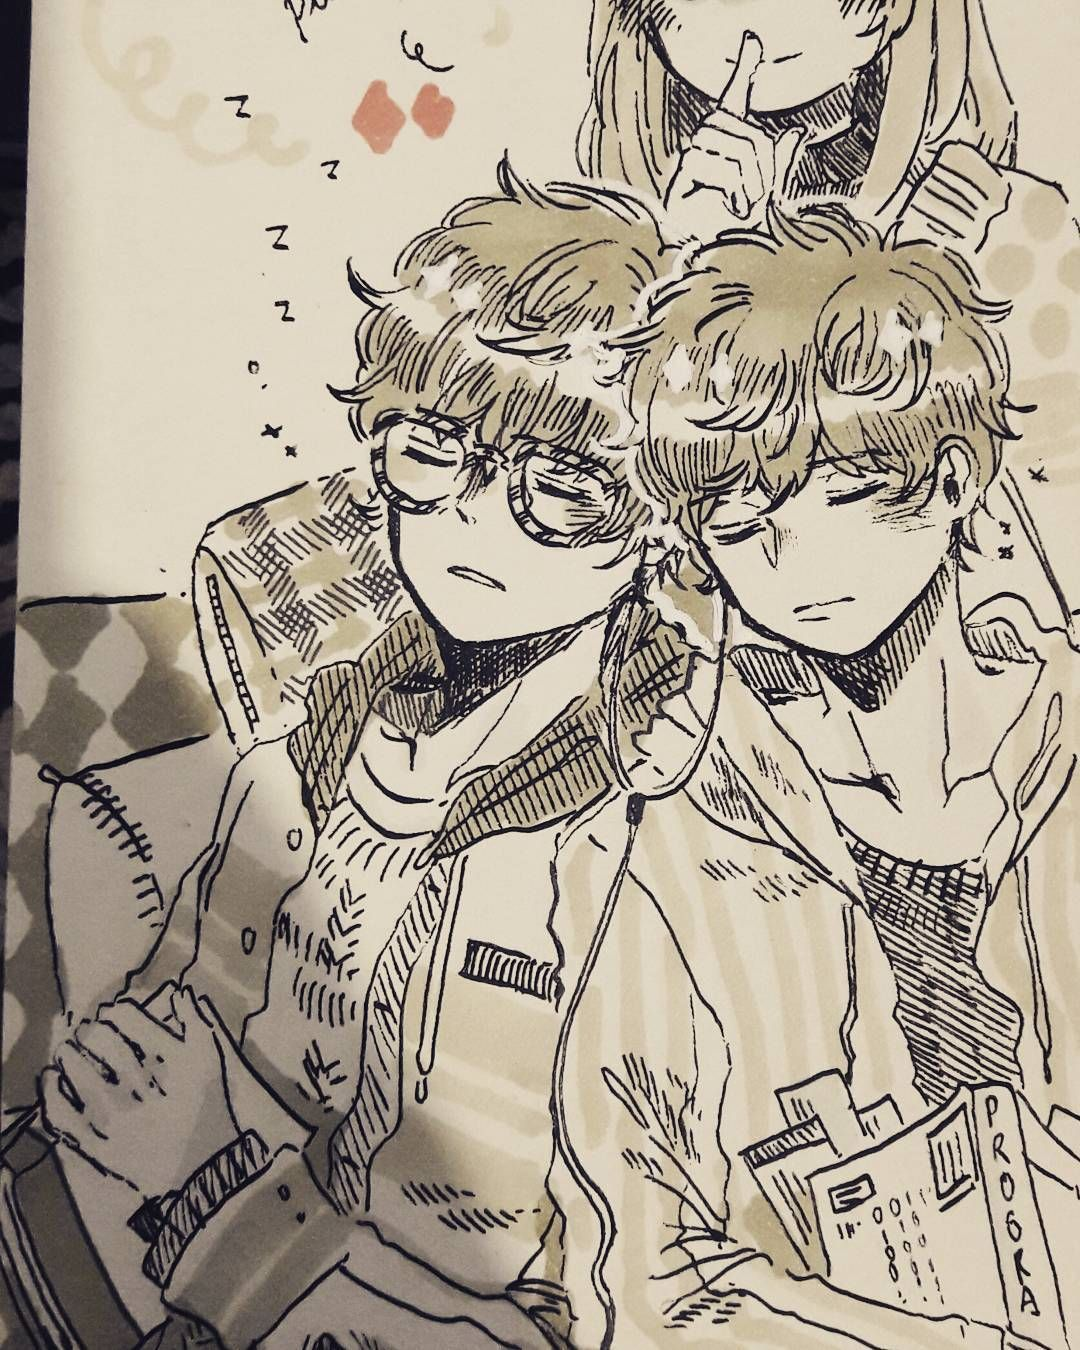 Our favorite twins!! I feel so conflicted about myself lately; so I'm trying to get back to my drawing mood. But it's not that easy...hmph. #Inktober #mysticmessenger #saeyoungchoi #saeranchoi #lucielchoi #marker